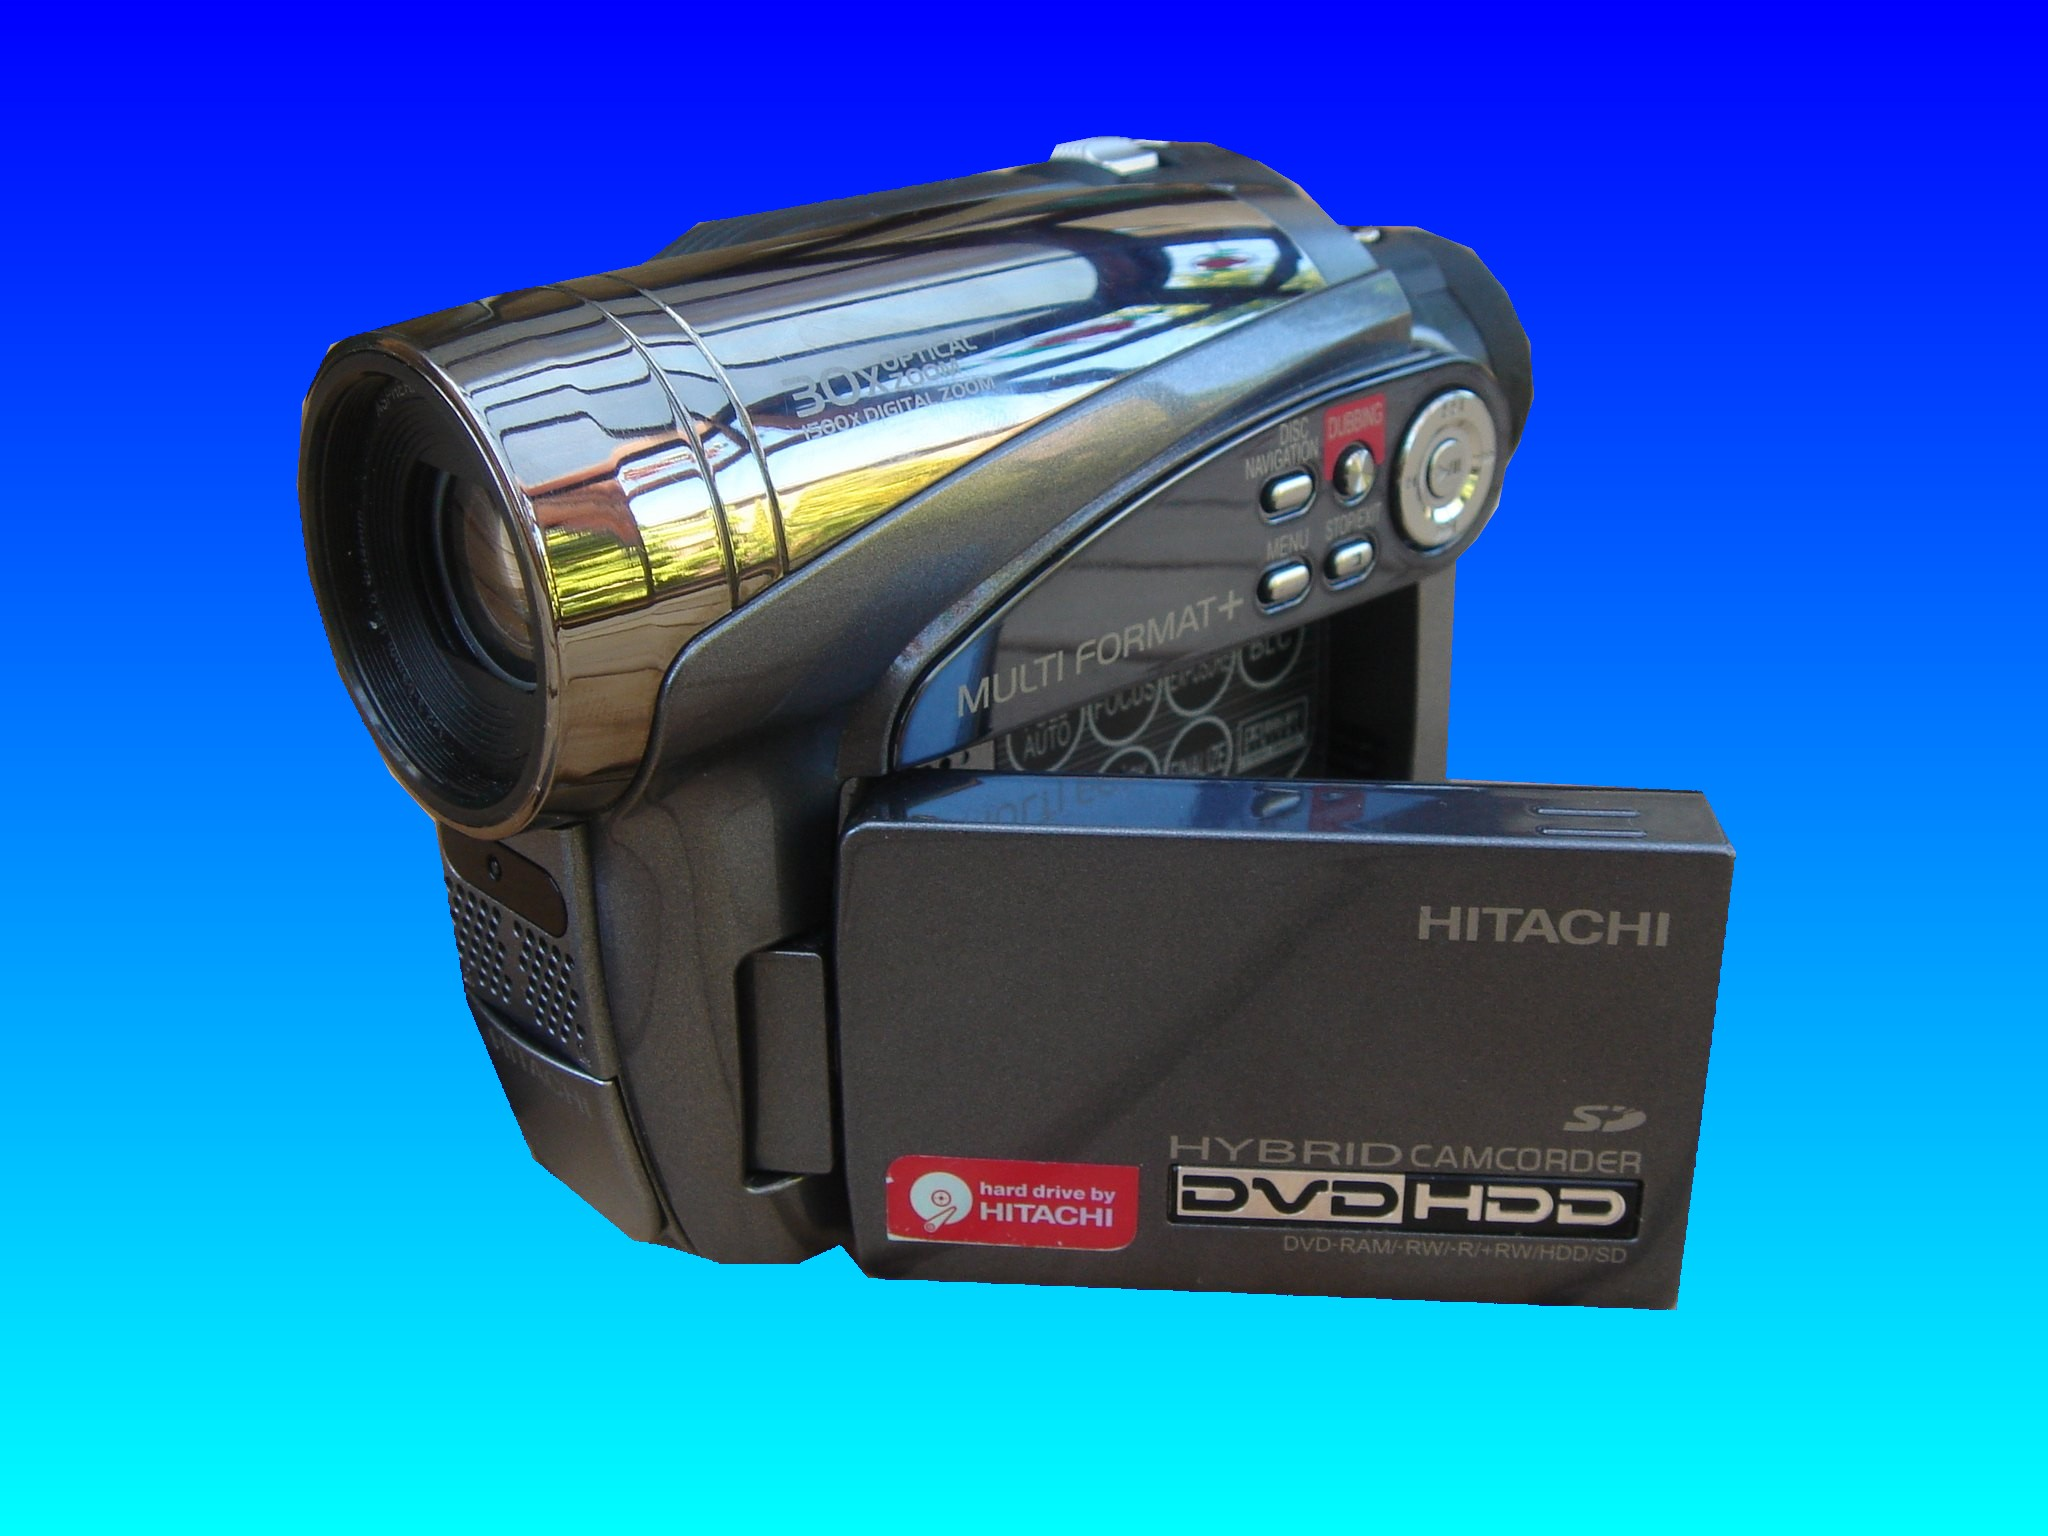 An Hitachi Camcorder model number DZ-HS500E that had everything deleted from the hard drive and needed the files recovering.